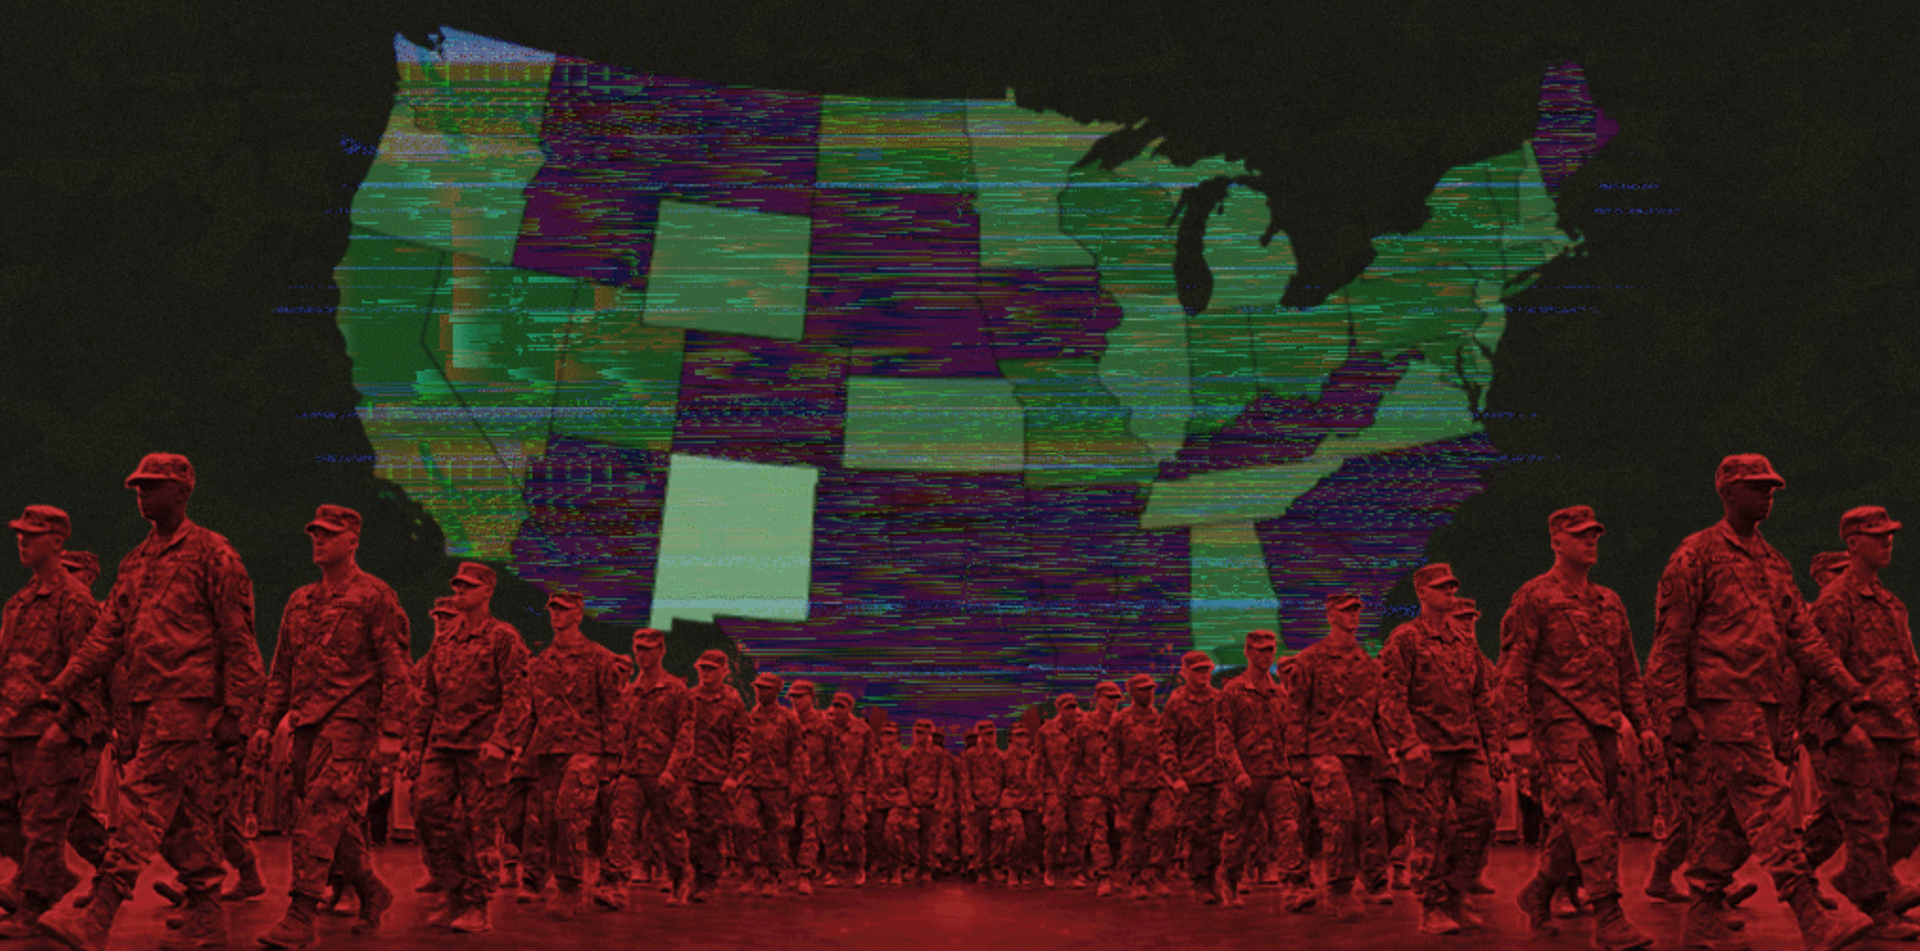 Disinformation agents are targeting veterans in run-up to 2020 election